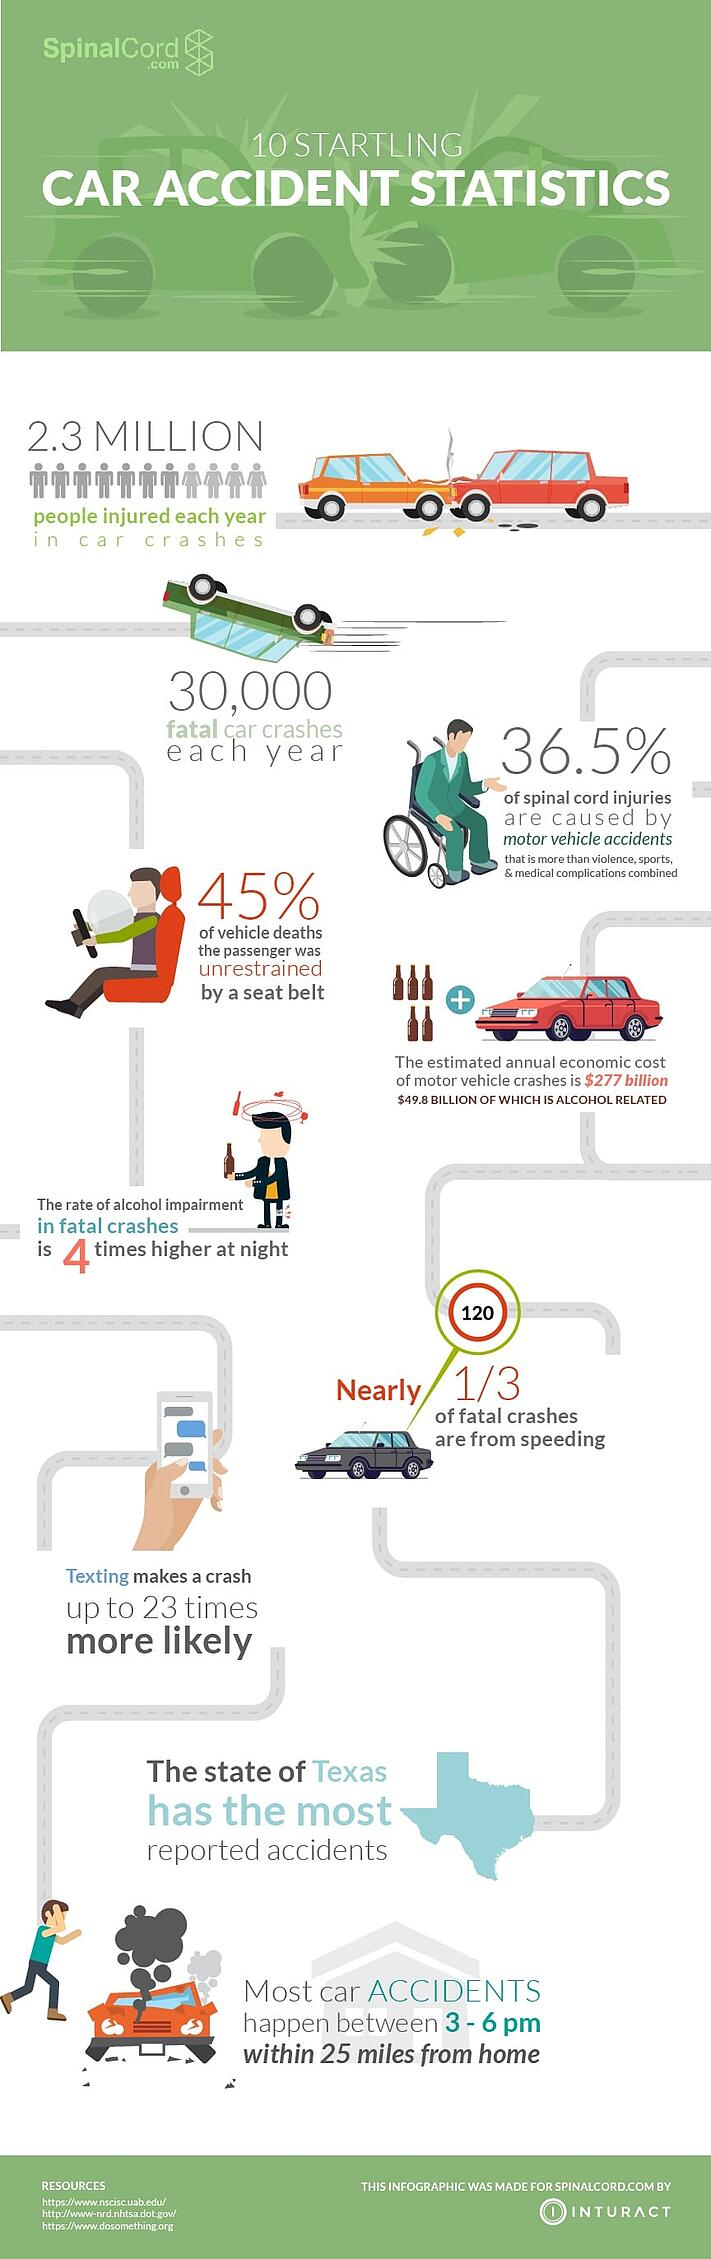 Car Accident Statistics Infographic